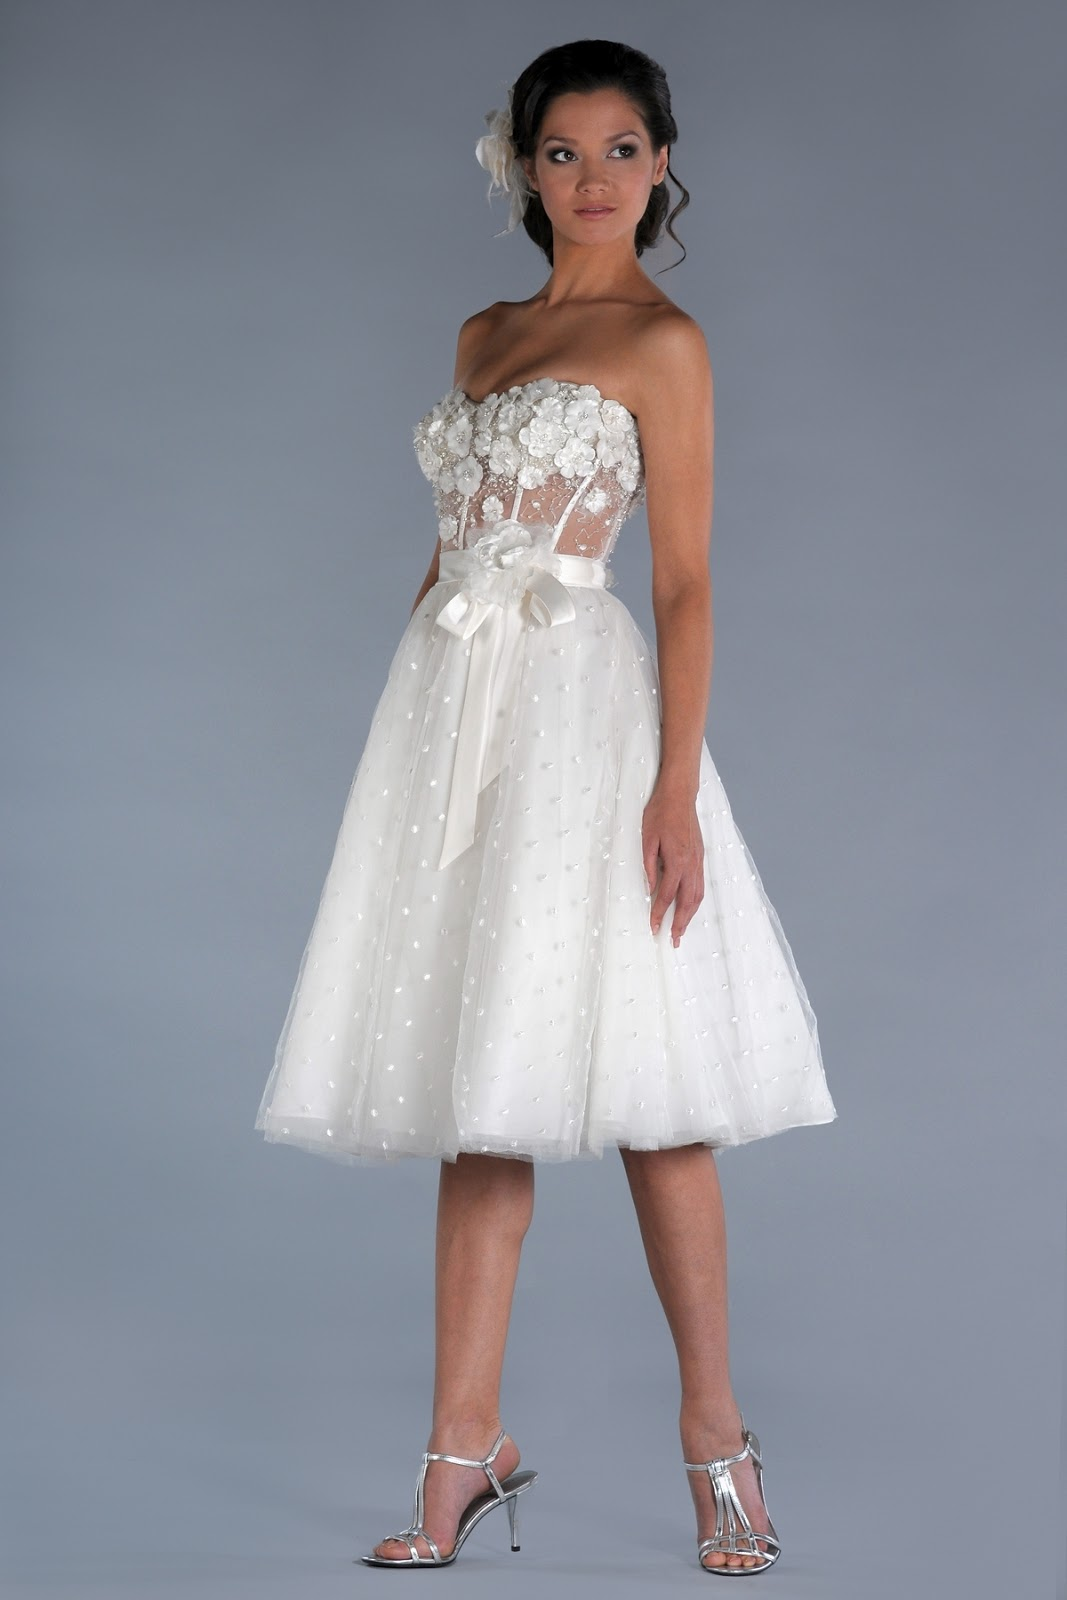 Dressybridal 5 cute short wedding dresses for summer for Cute short white wedding dresses